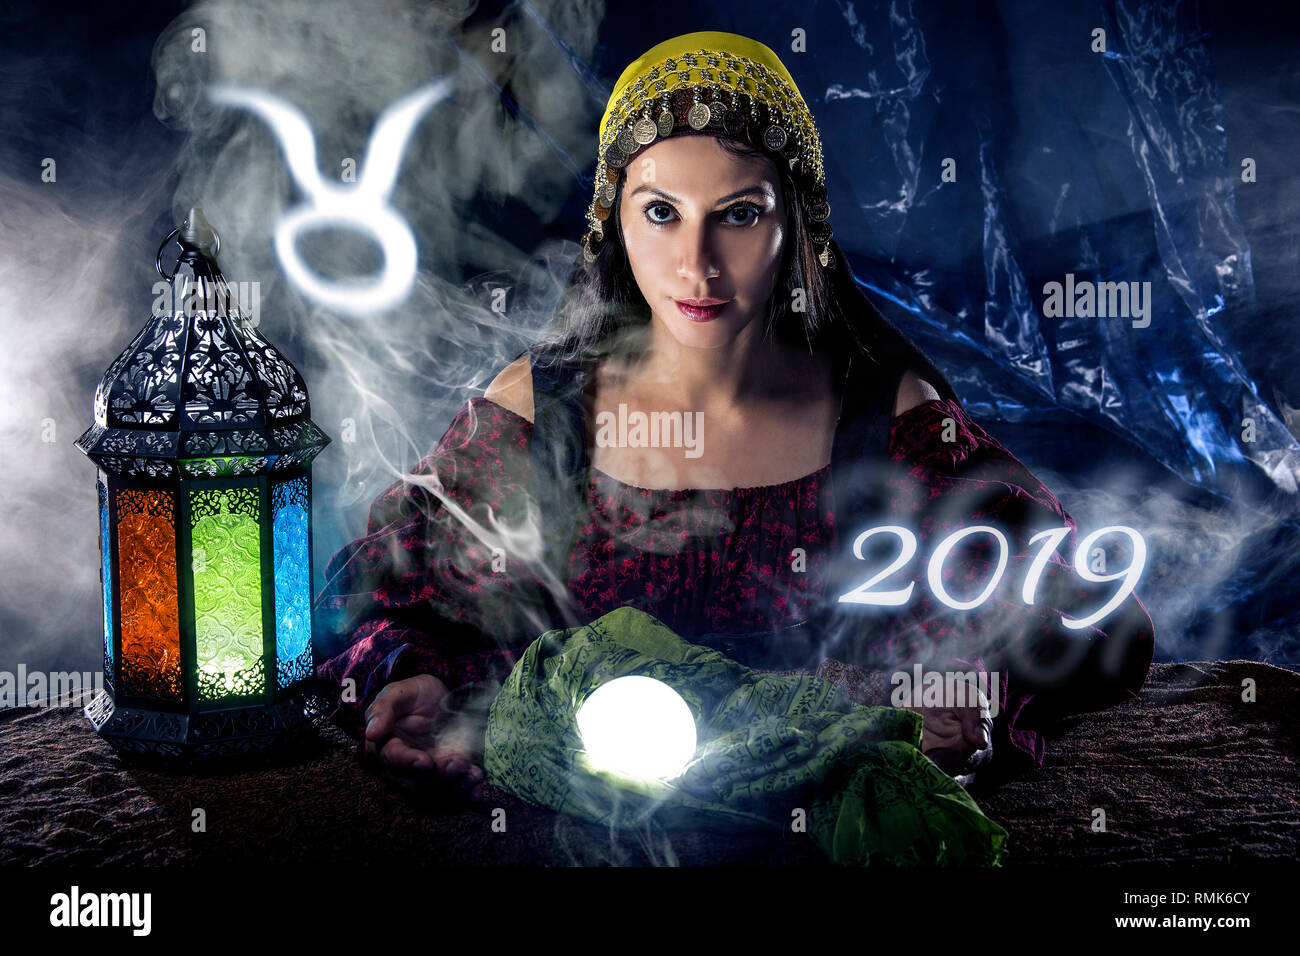 Psychic or fortune teller with crystal ball and horoscope zodiac sign of Taurus - Stock Image